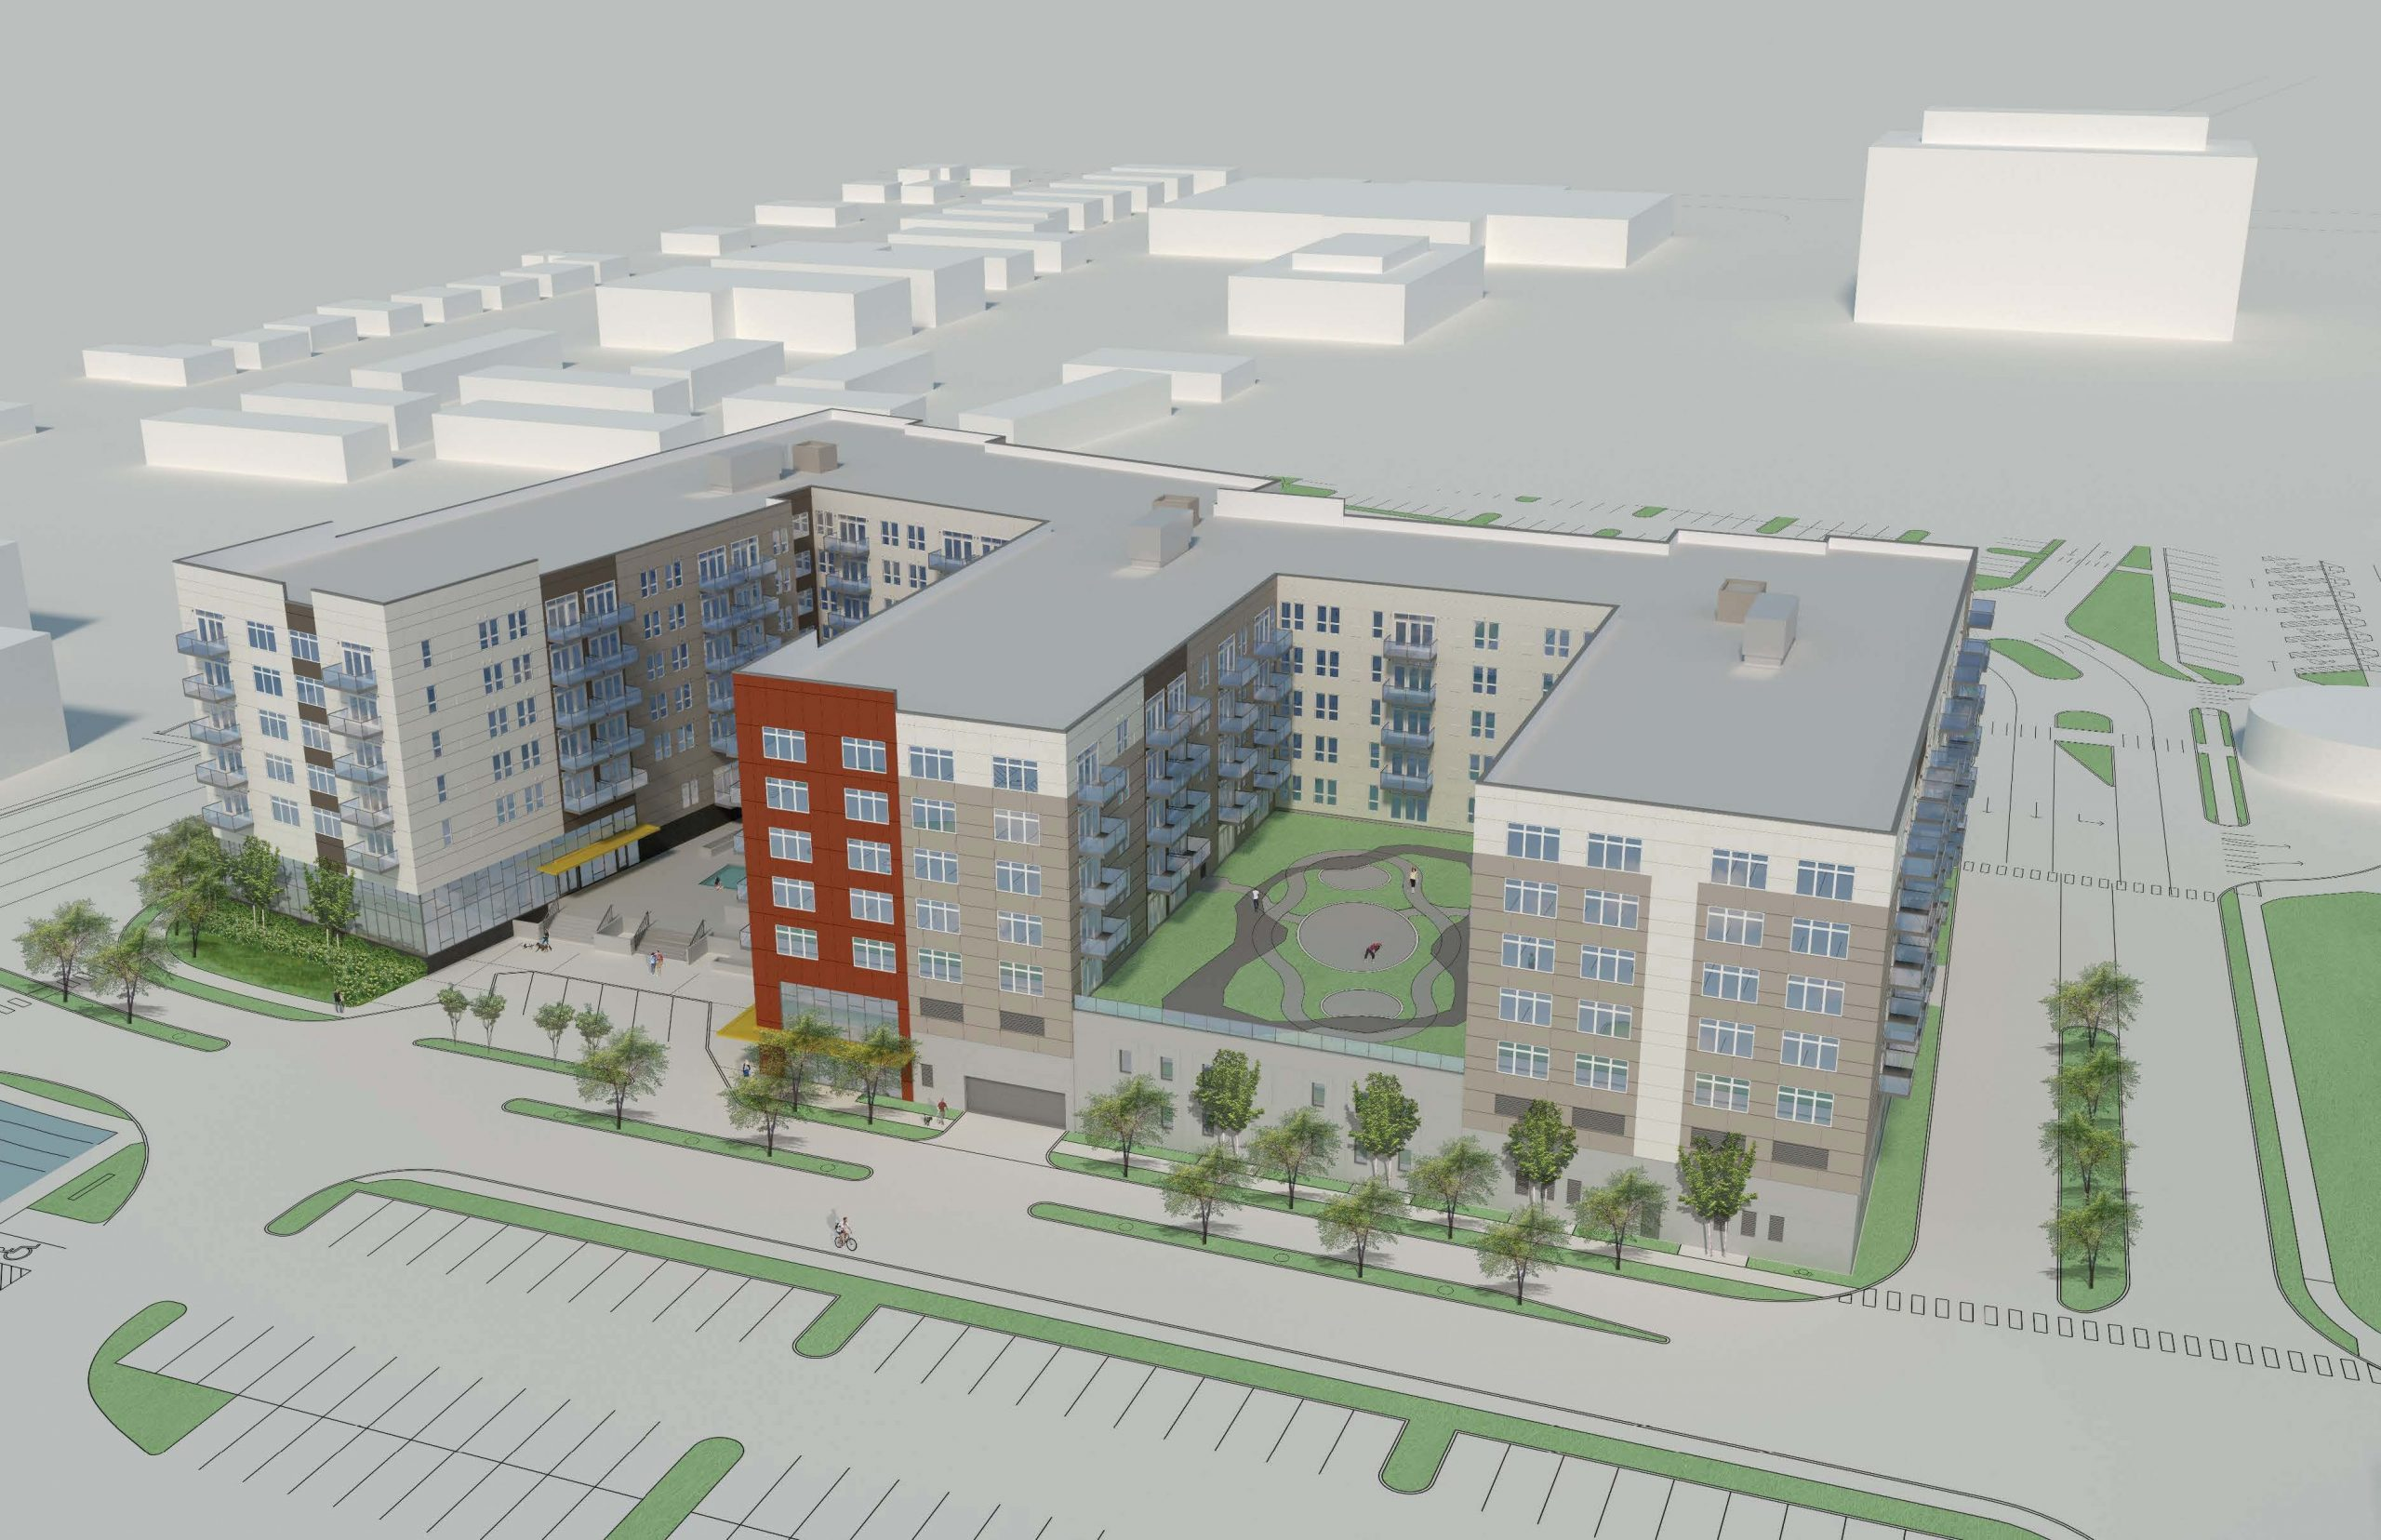 Rendering of the proposed apartment development in Napolitano's ward